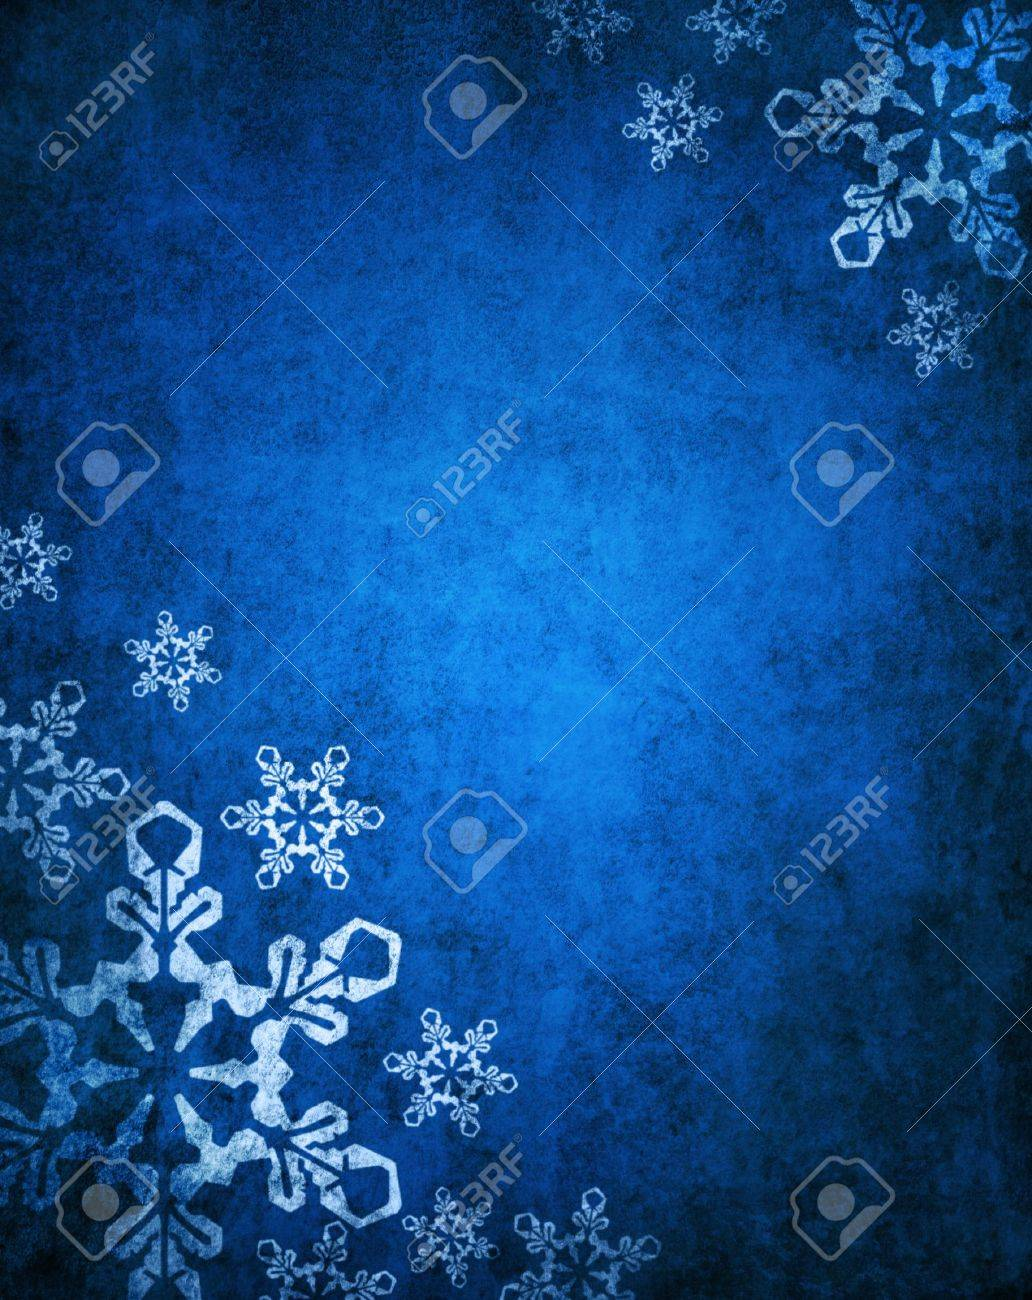 Christmas blue background with white snowflakes - 16478777